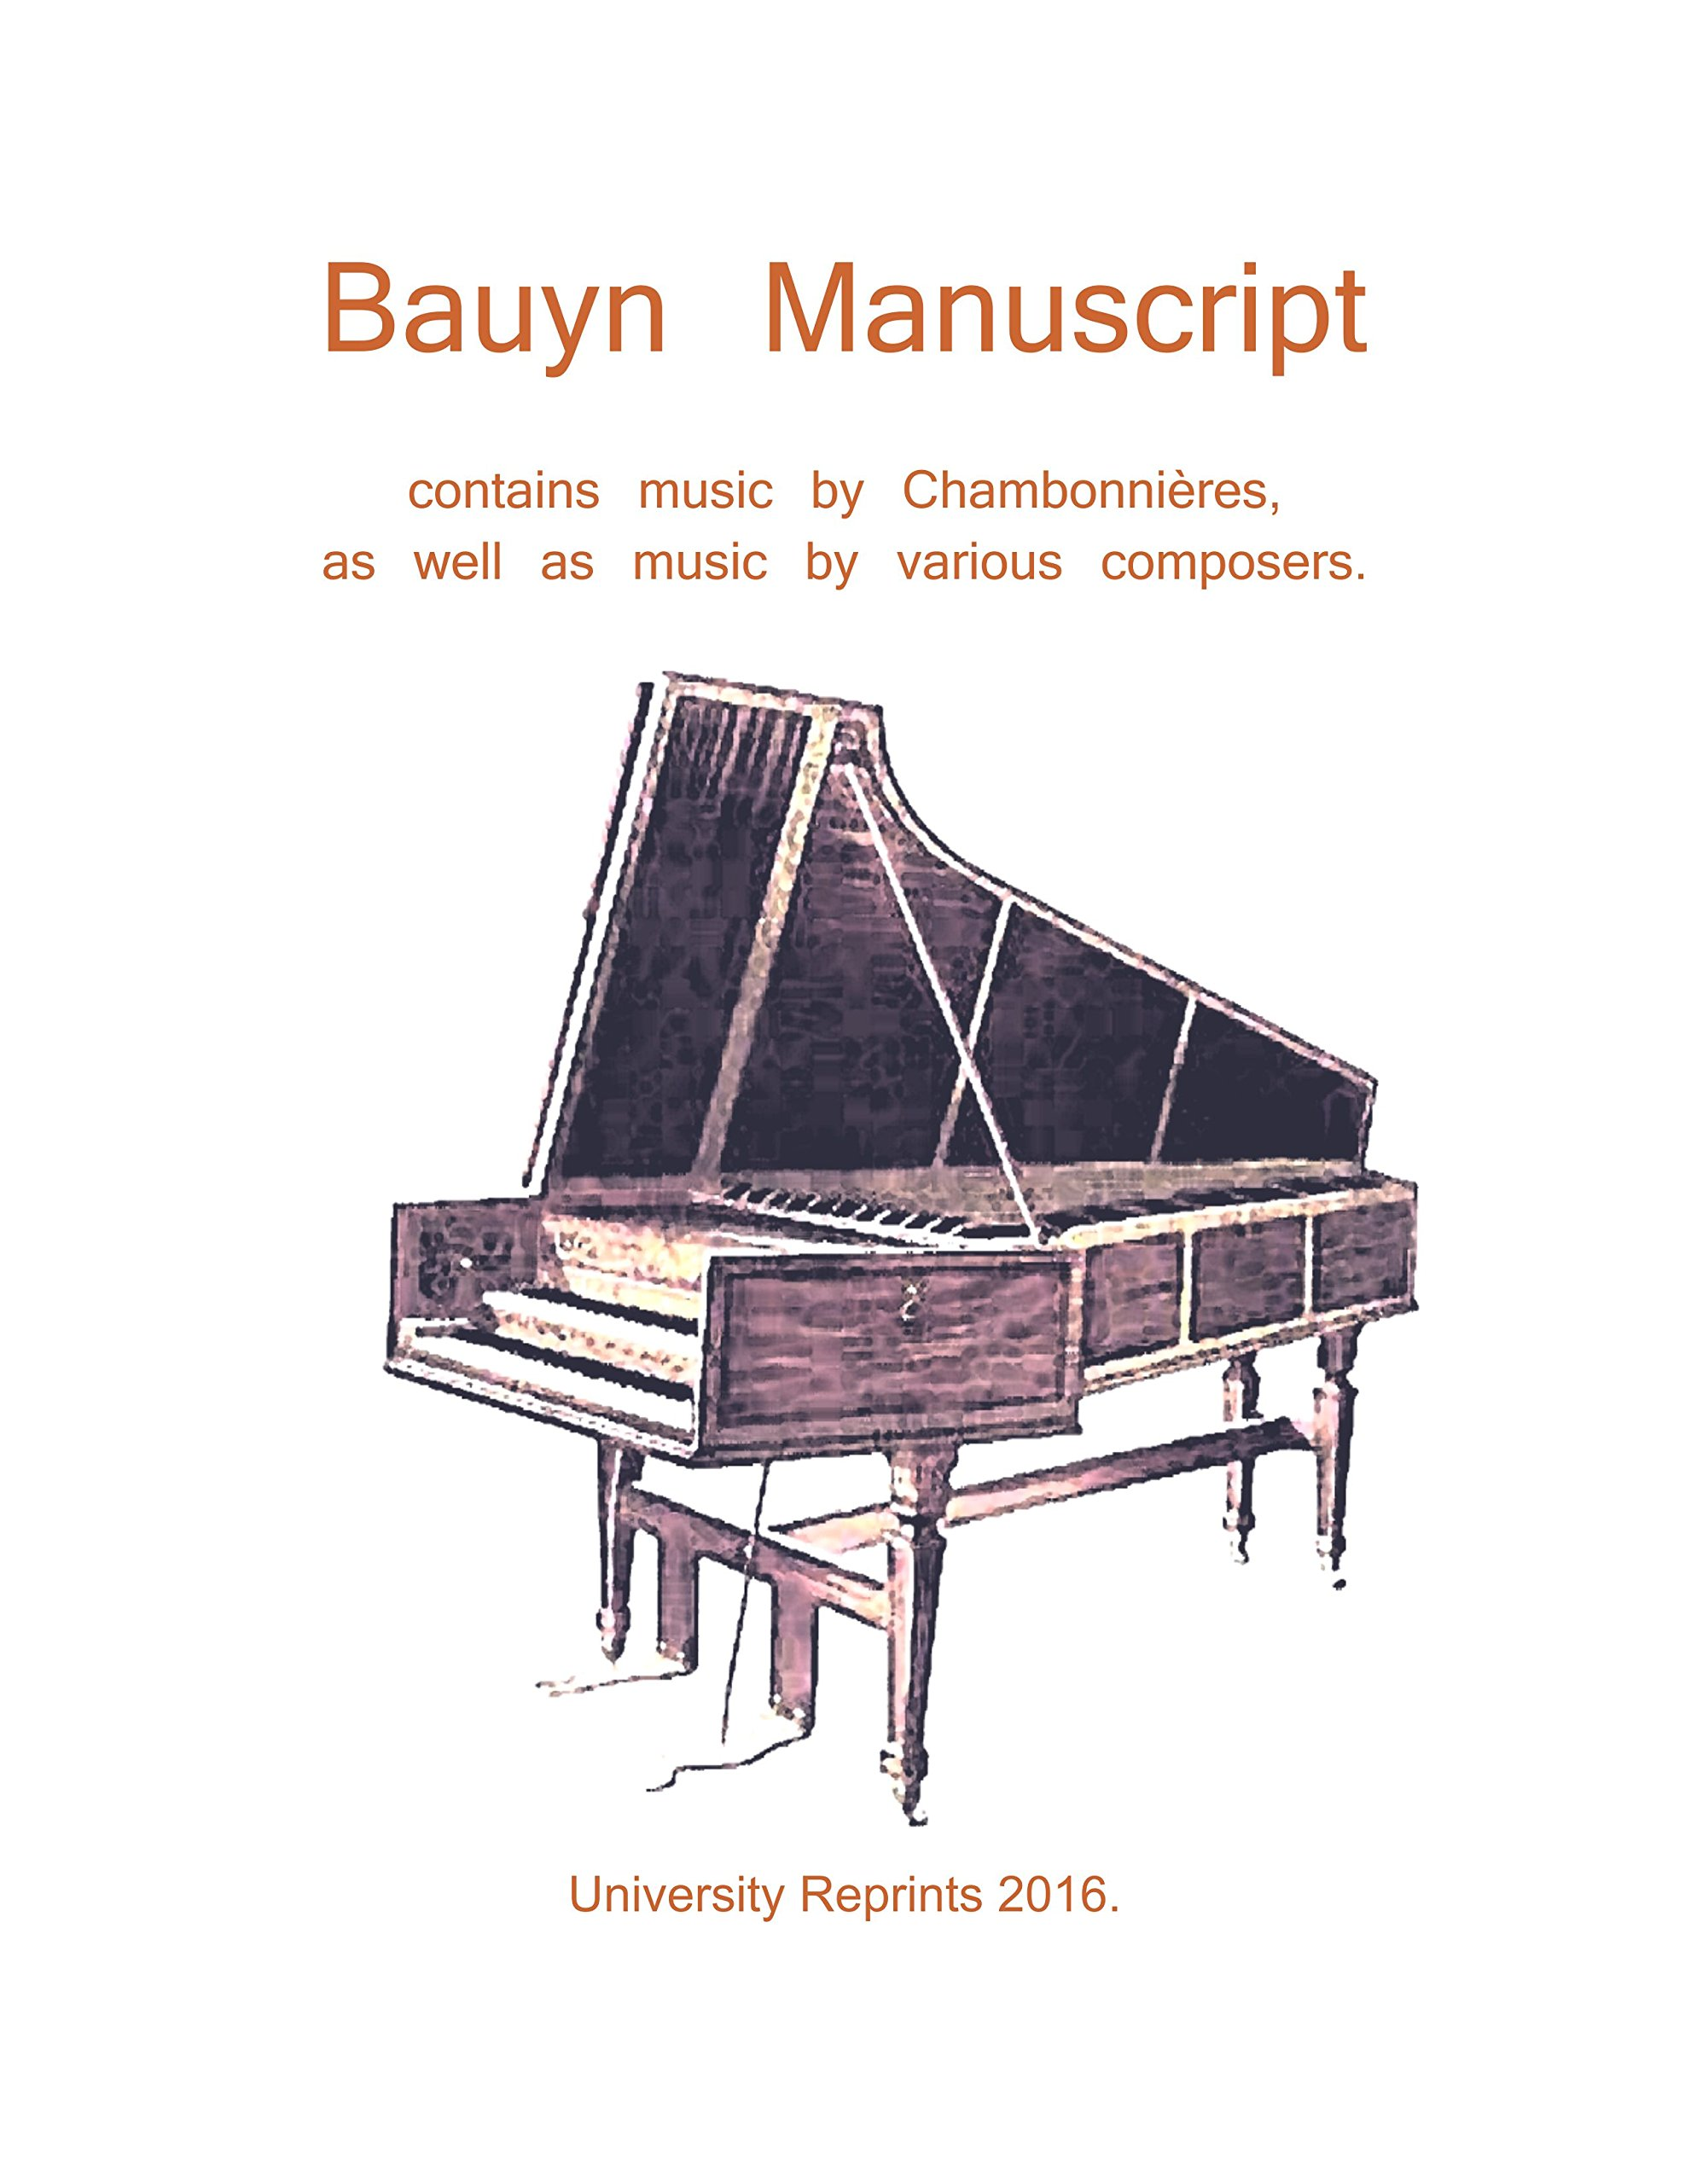 Bauyn Manuscript Volume One for Harpsichord; contains music by Chambonnieres, as well as music by various composers. [Student Loose Leaf Facsimile Edition. Beautifully Re-Imaged from Original] pdf epub